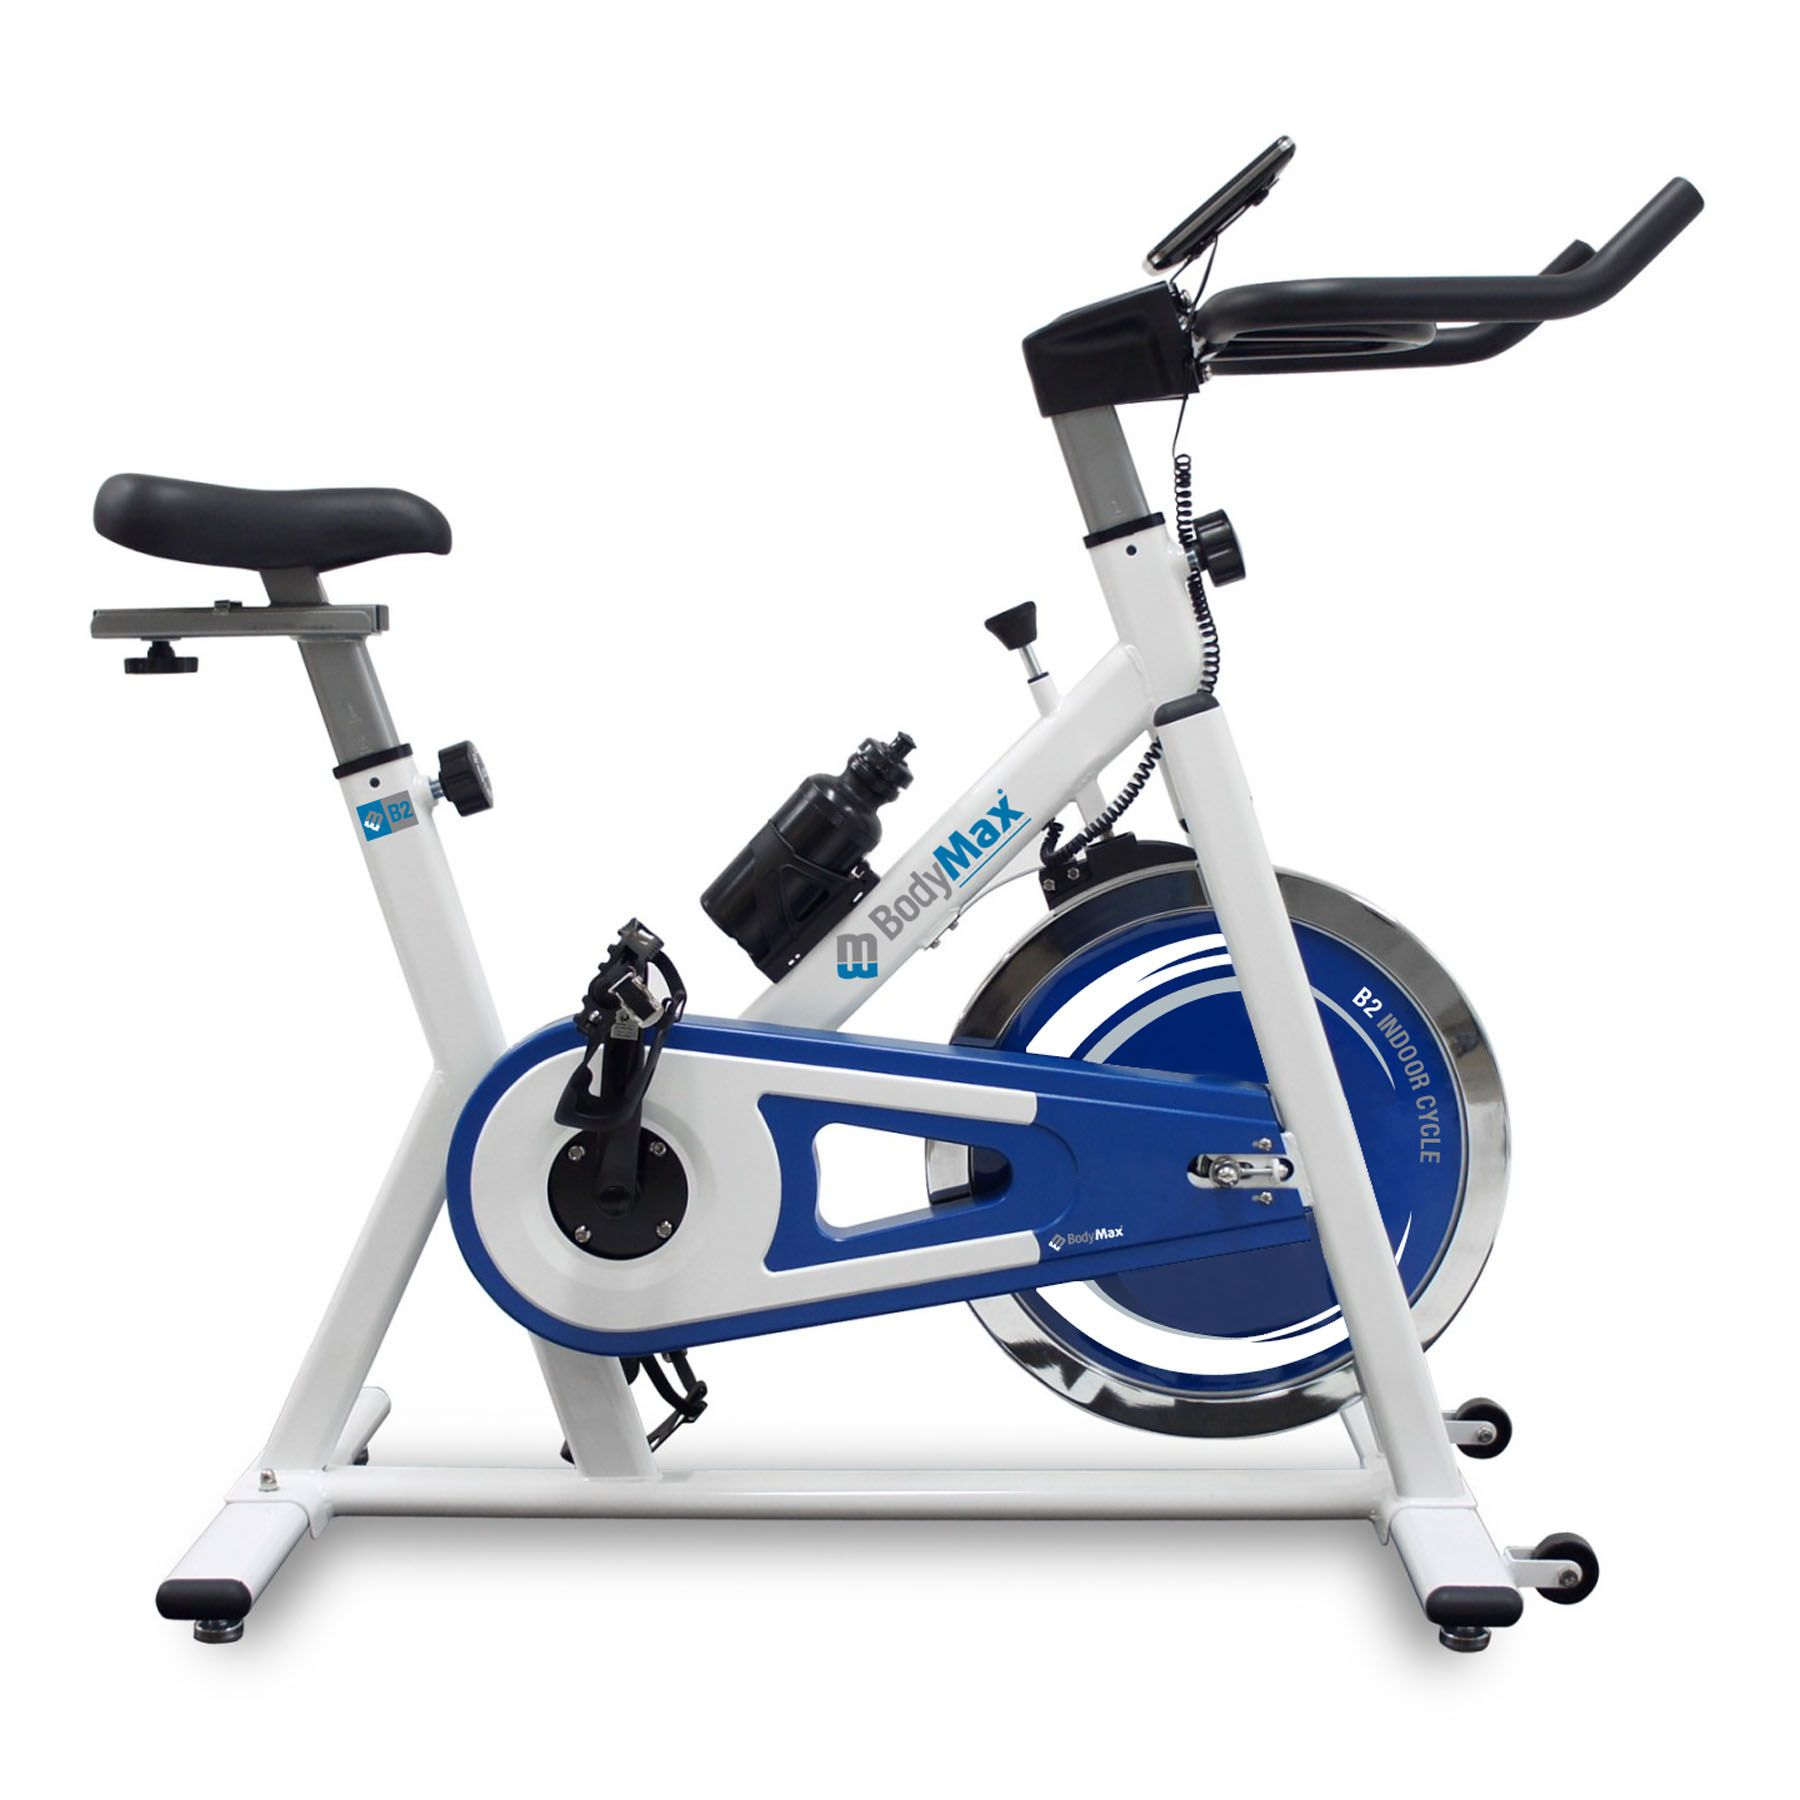 Things To Consider Before Buying An Exercise Bike